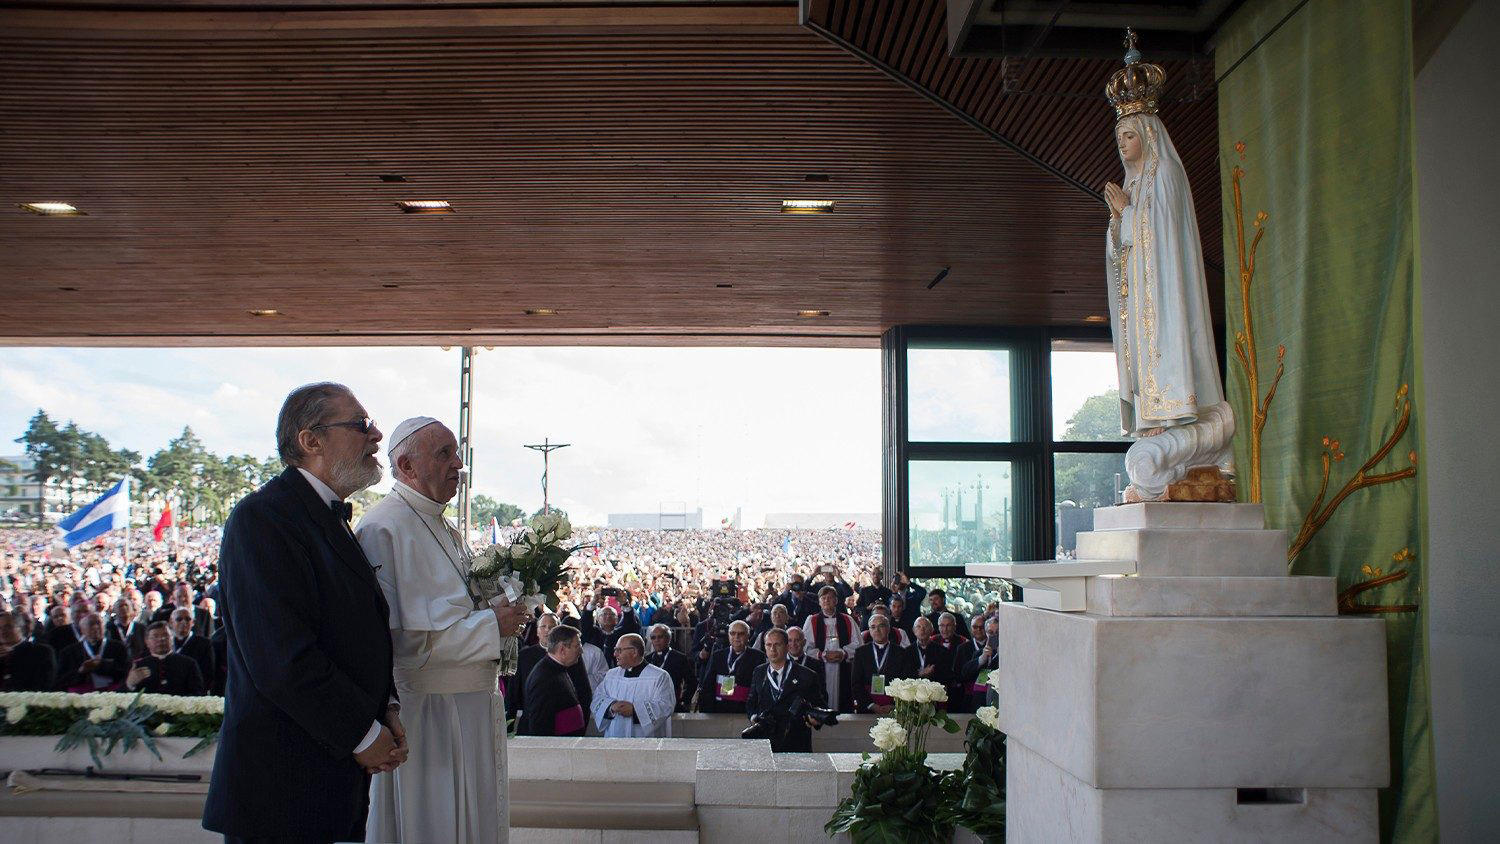 Pope Francis' personal doctor has died of COVID-19